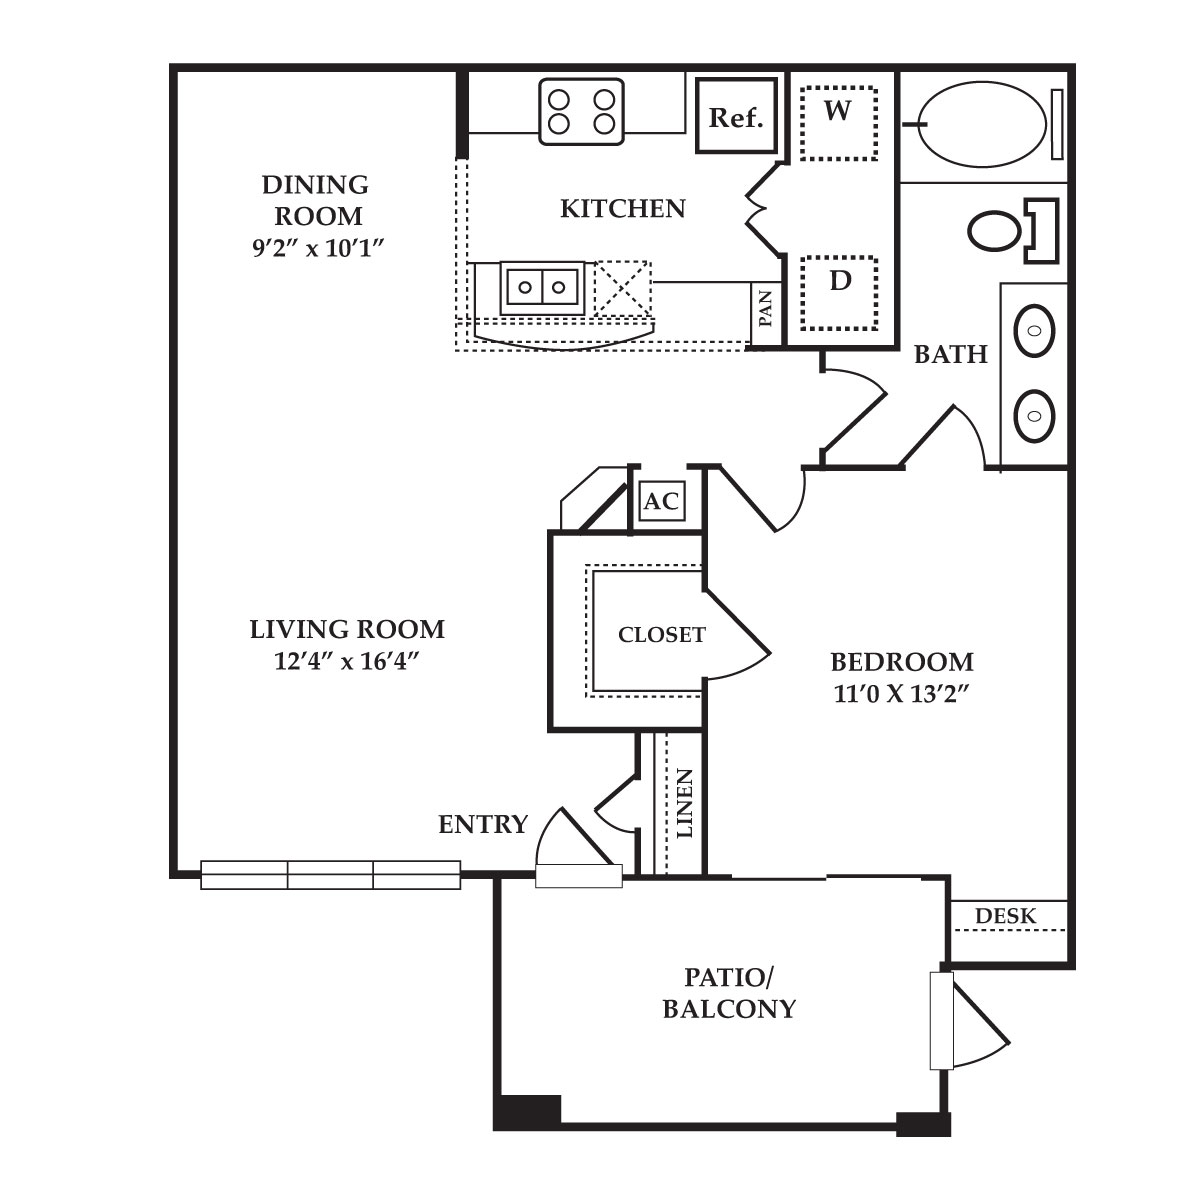 Floorplan - Ruby image